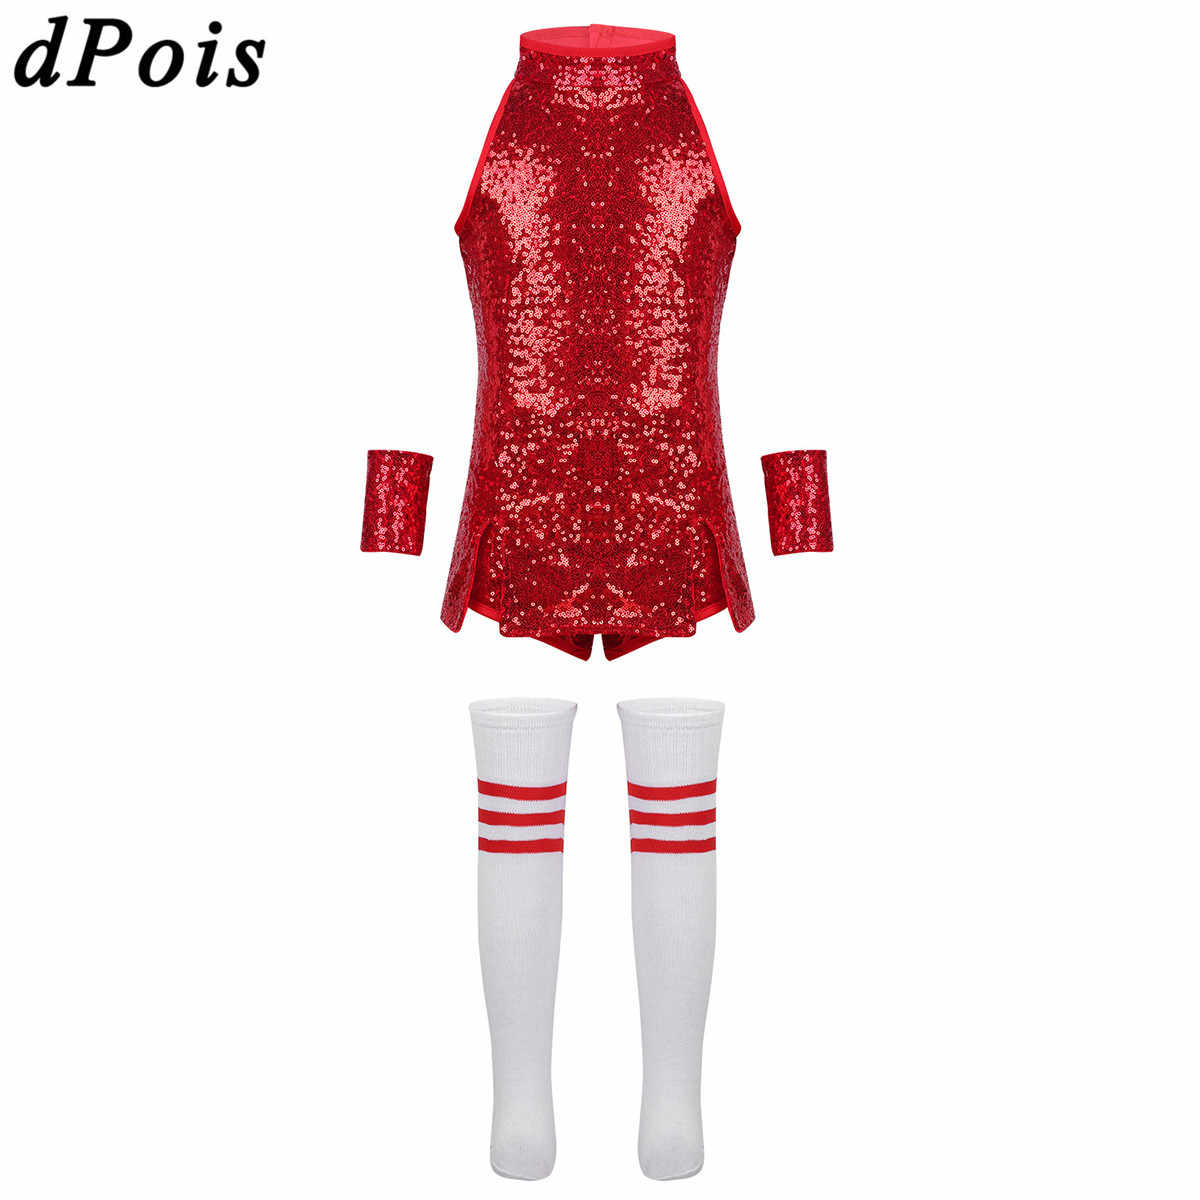 7fd705bde8da3 Kids Children Hip Hop Dance Costume Sparkly Stage Jazz Cheerleading Costumes  Suit Set Girls Tops Shorts